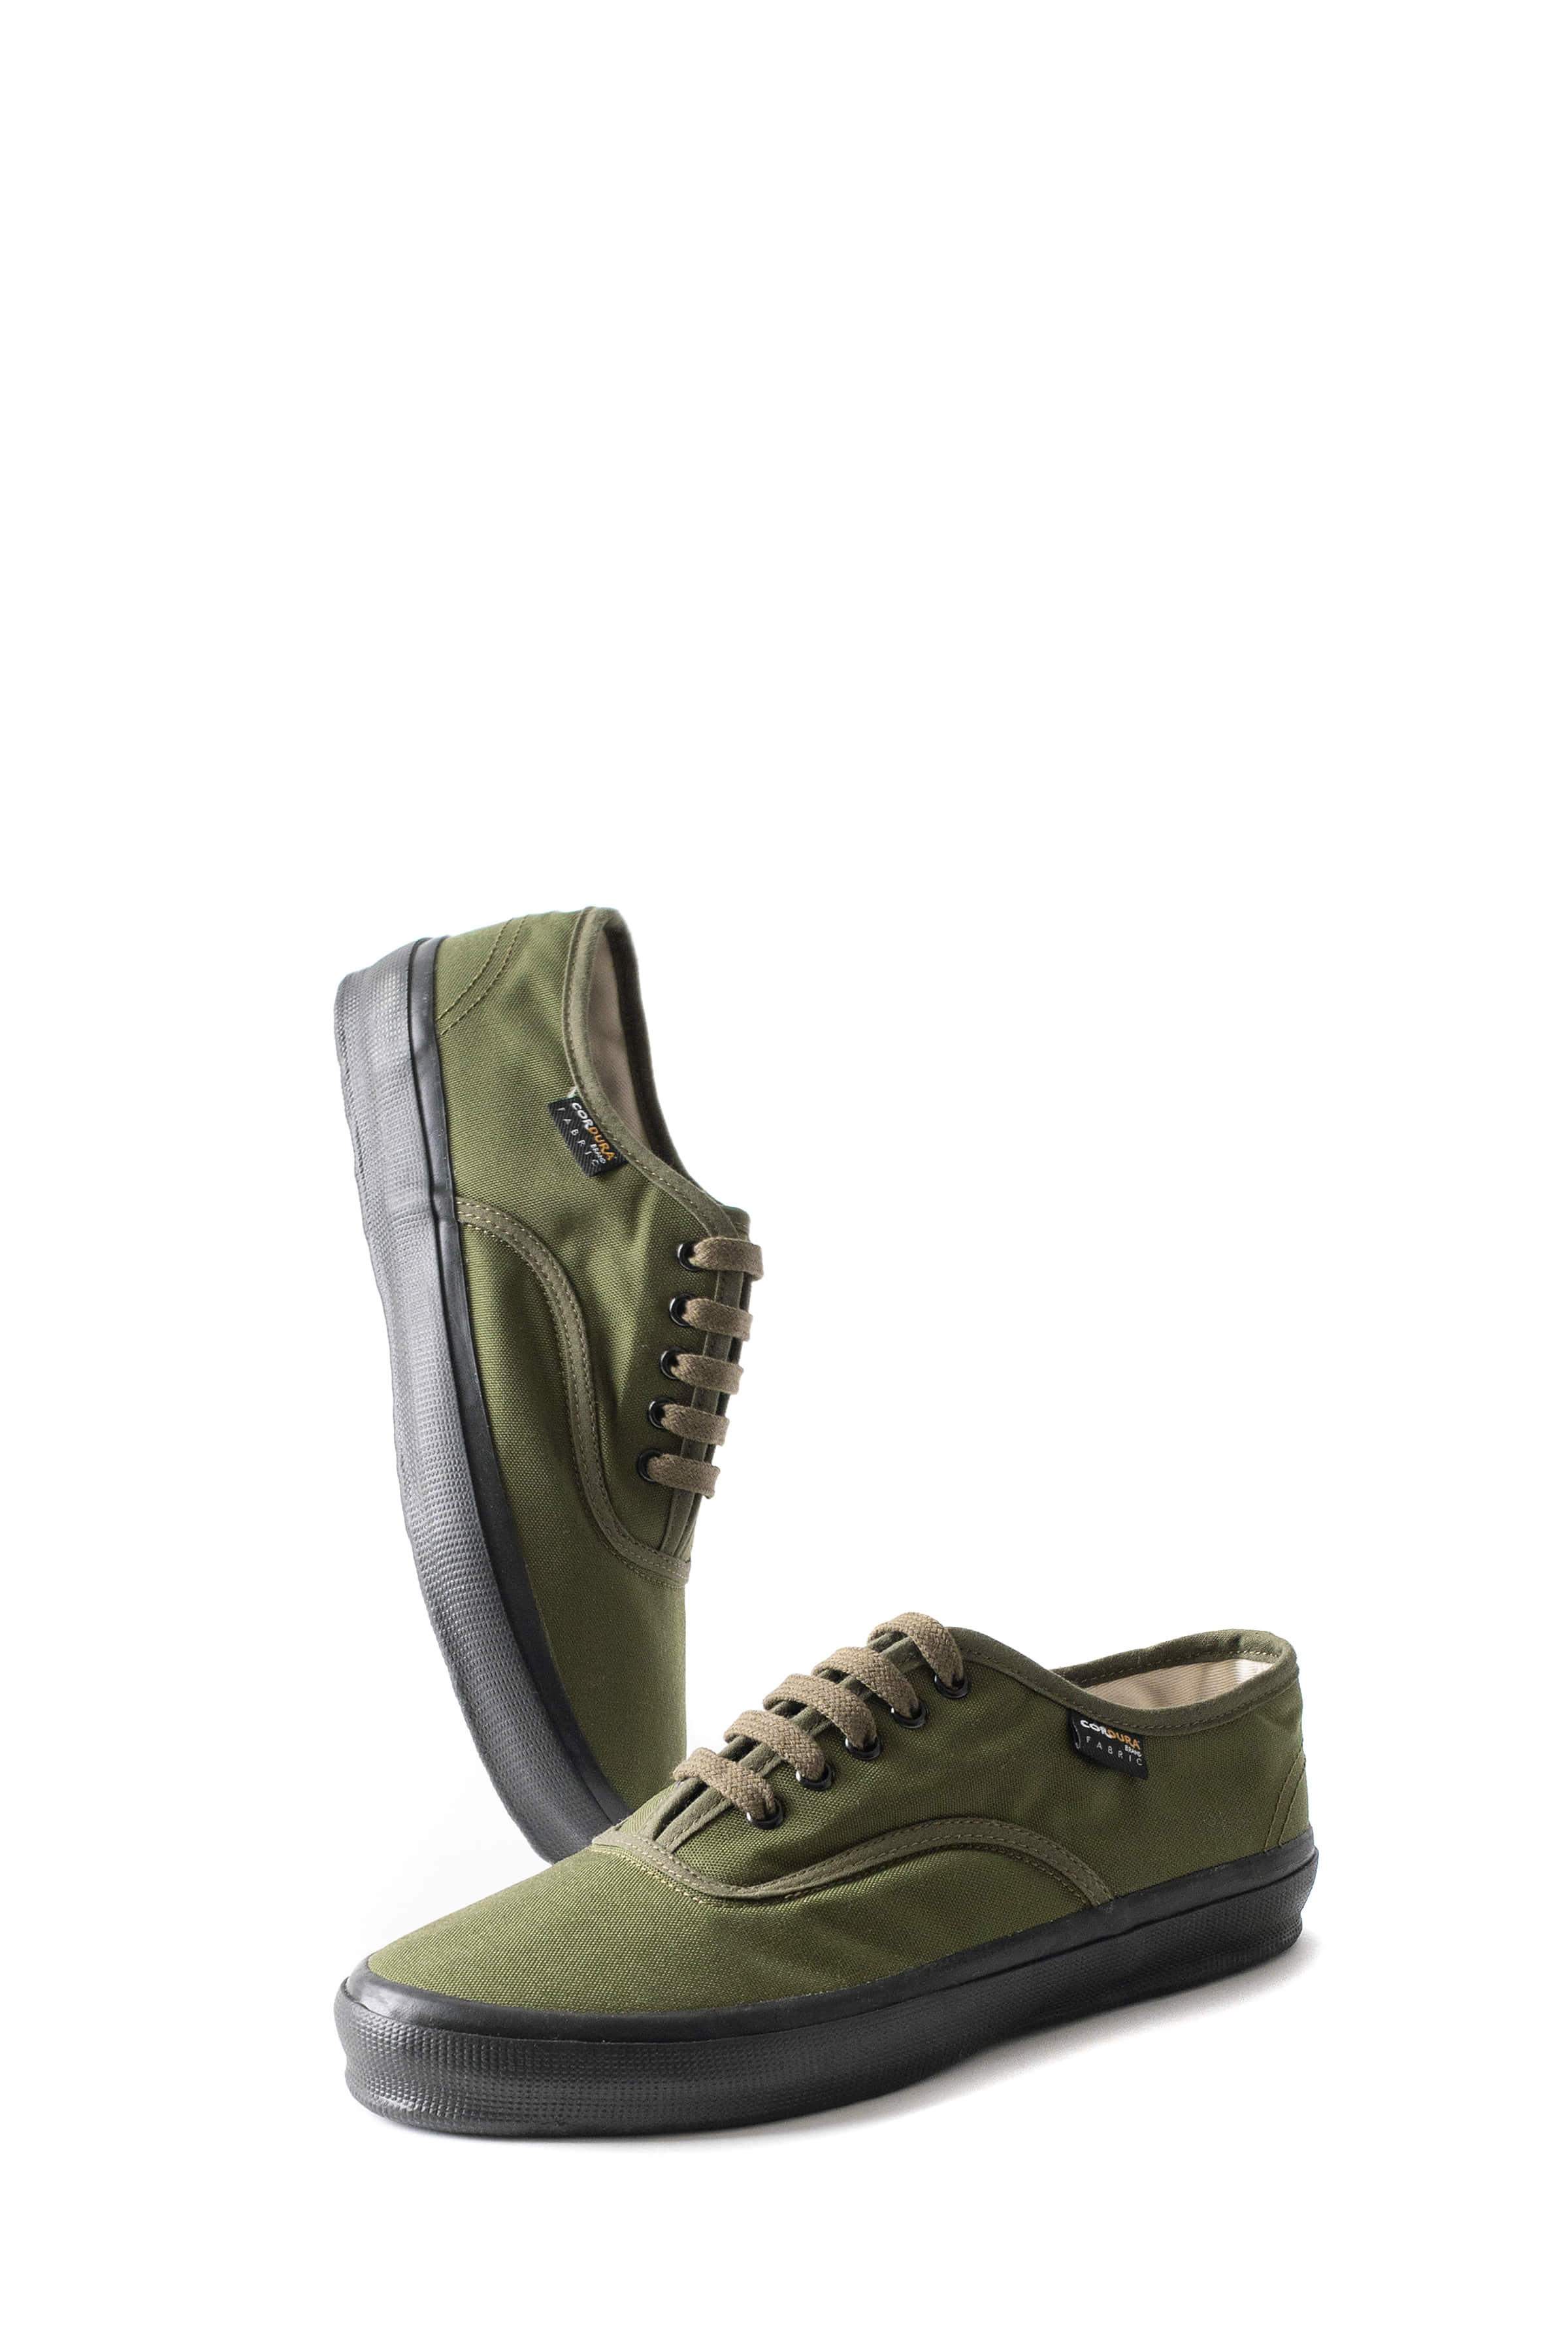 REPRODUCTION OF FOUND : US Navy Military Trainer (Olive / Black Sole)